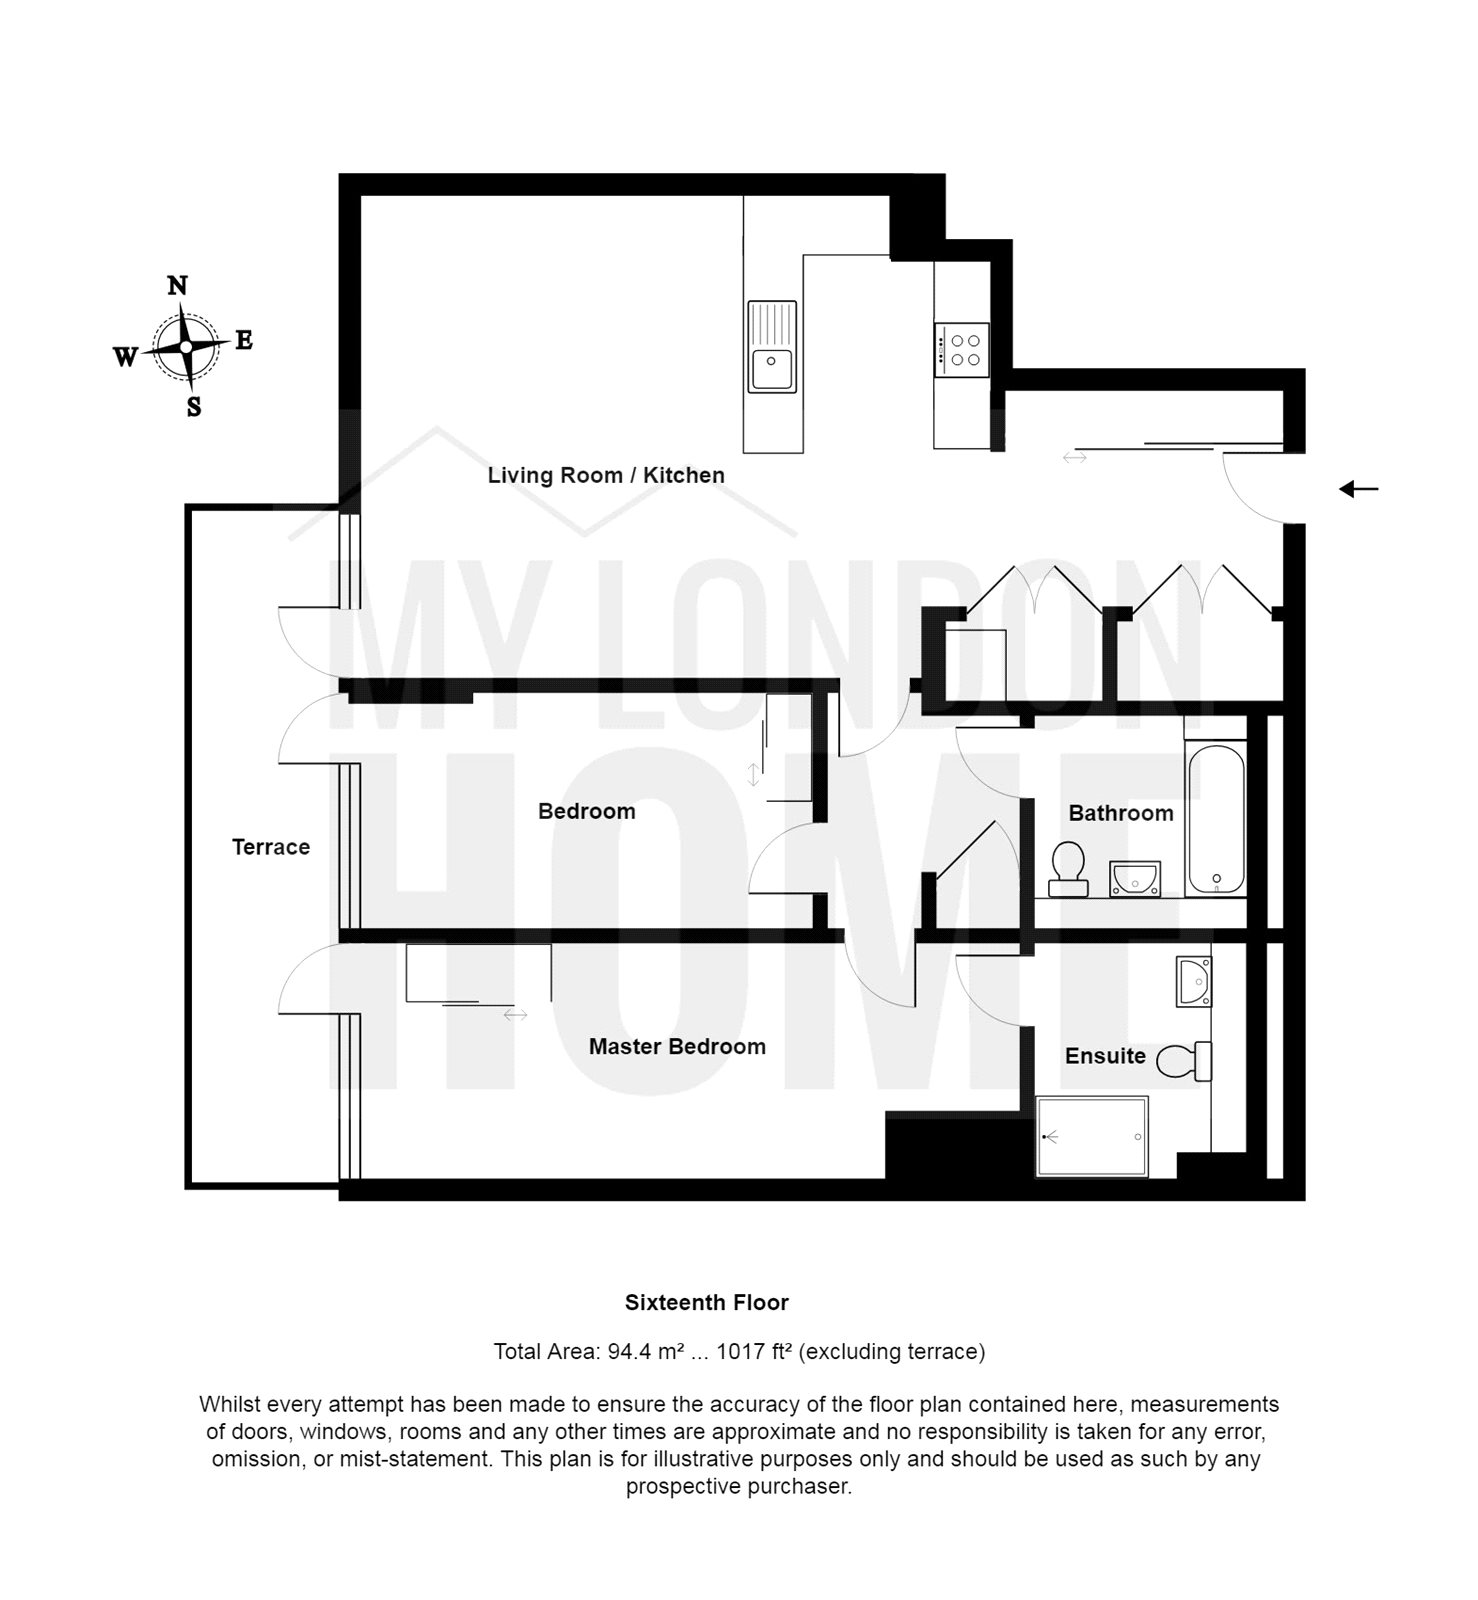 2 bed property for sale in markham heights 5 crossharbour plaza